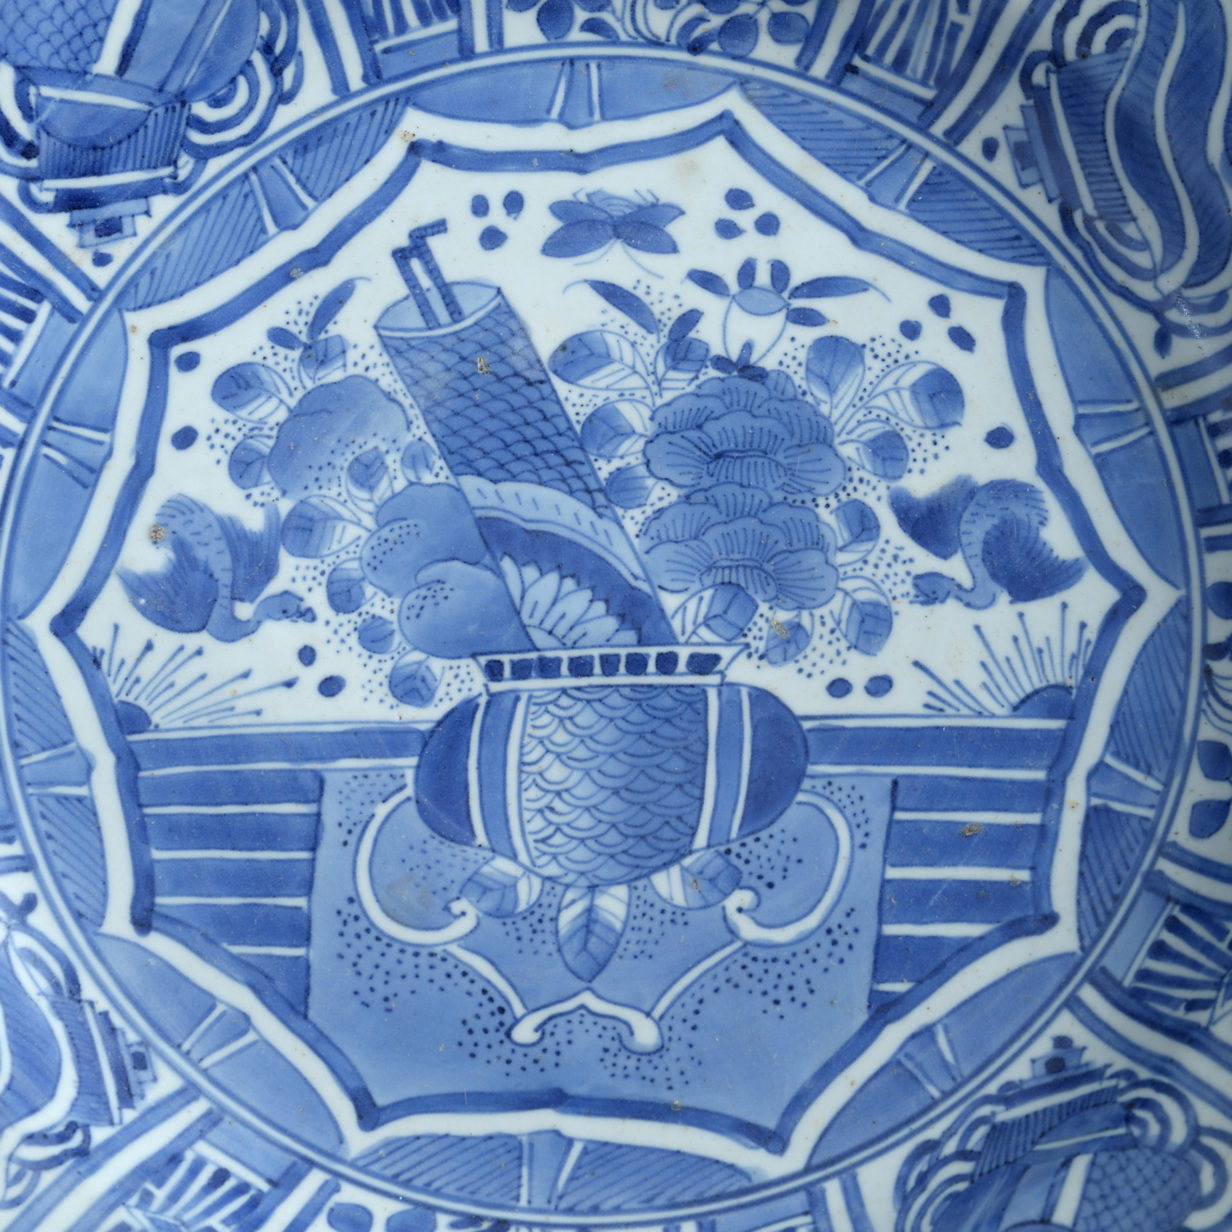 A Japanese Blue and White Kraakware Charger